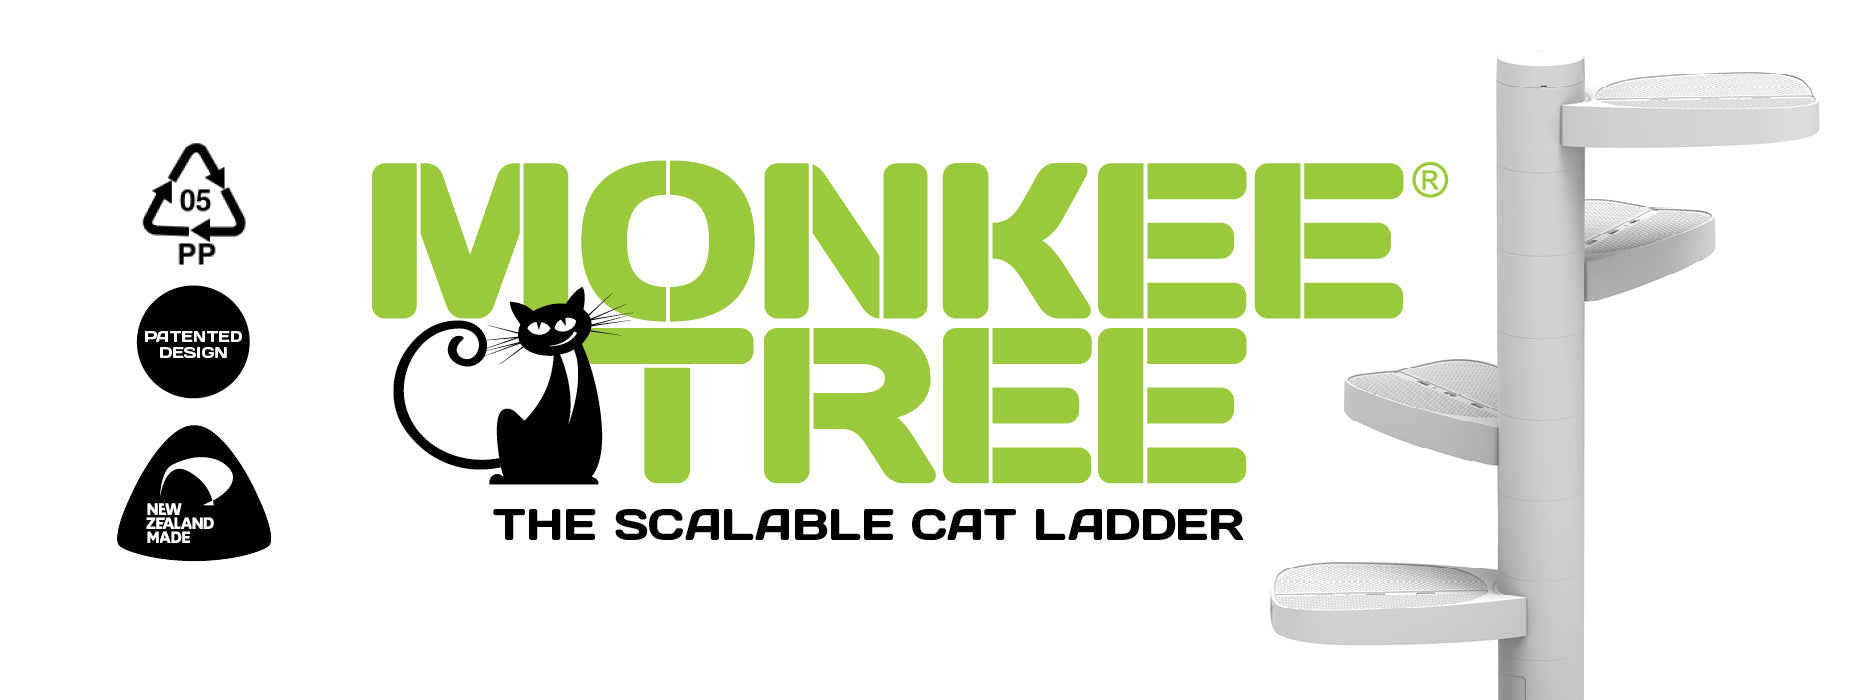 monkee tree modular cat ladder